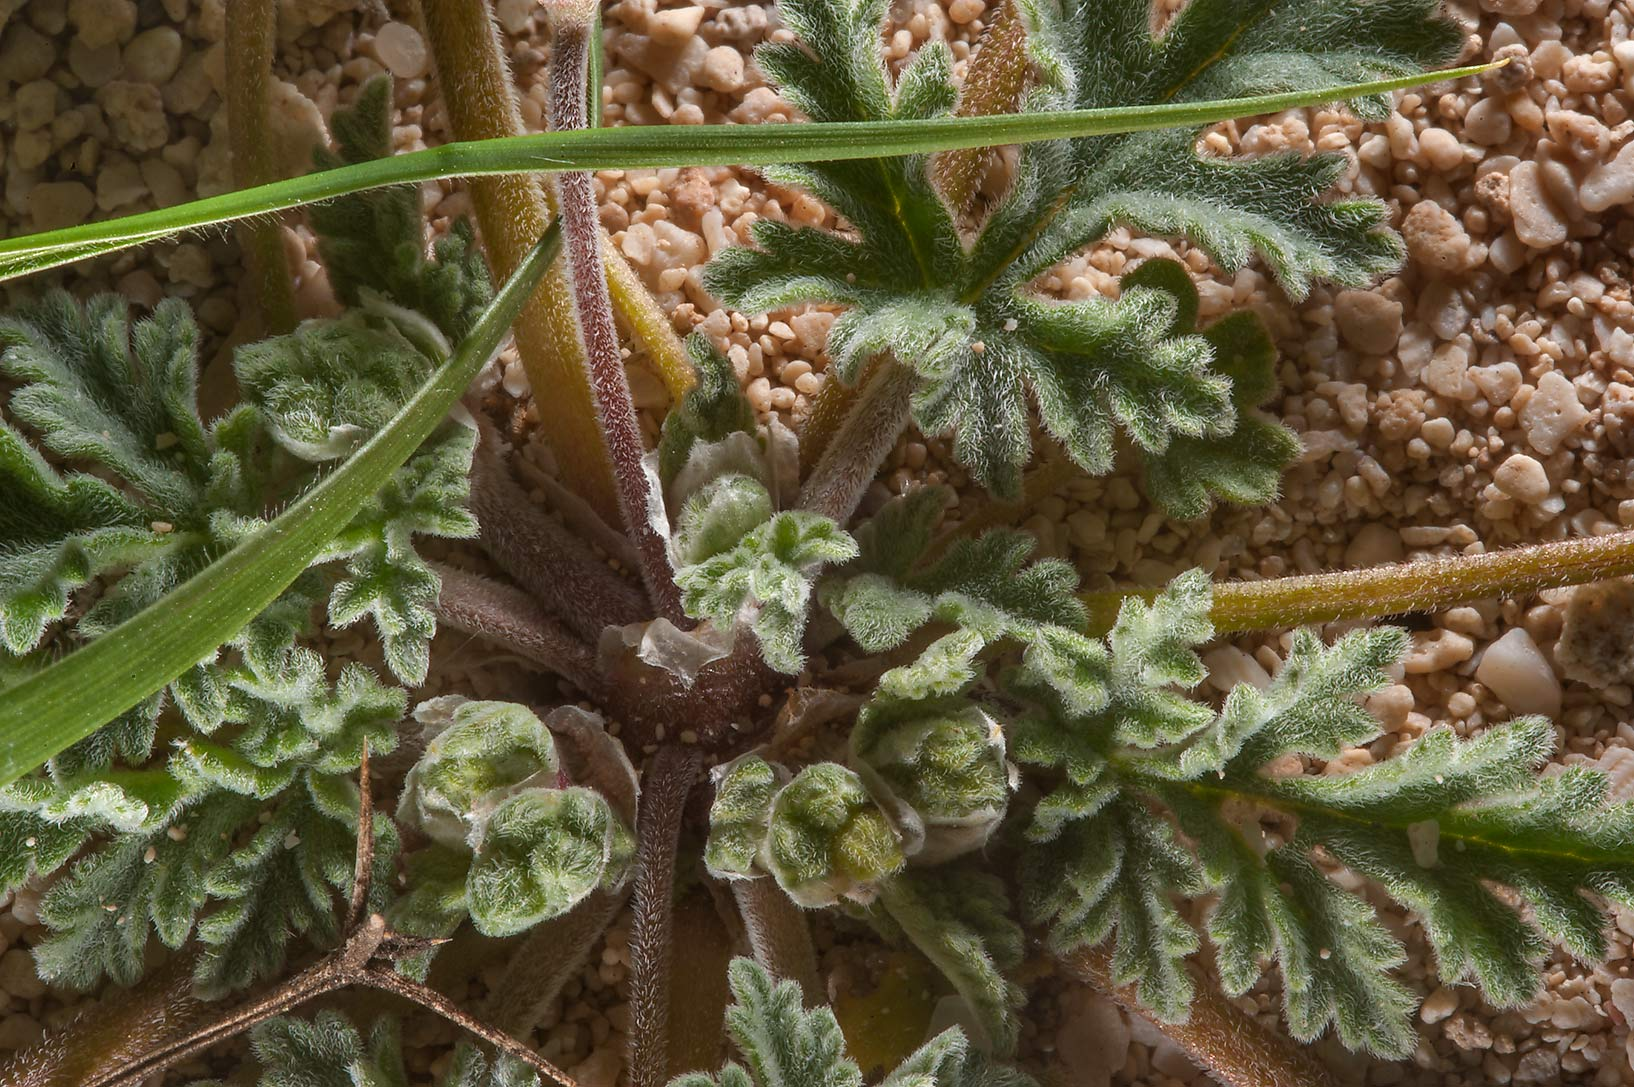 Leaves of Cutleaf Heron's bill (Erodium...on north-eastern coast. Qatar